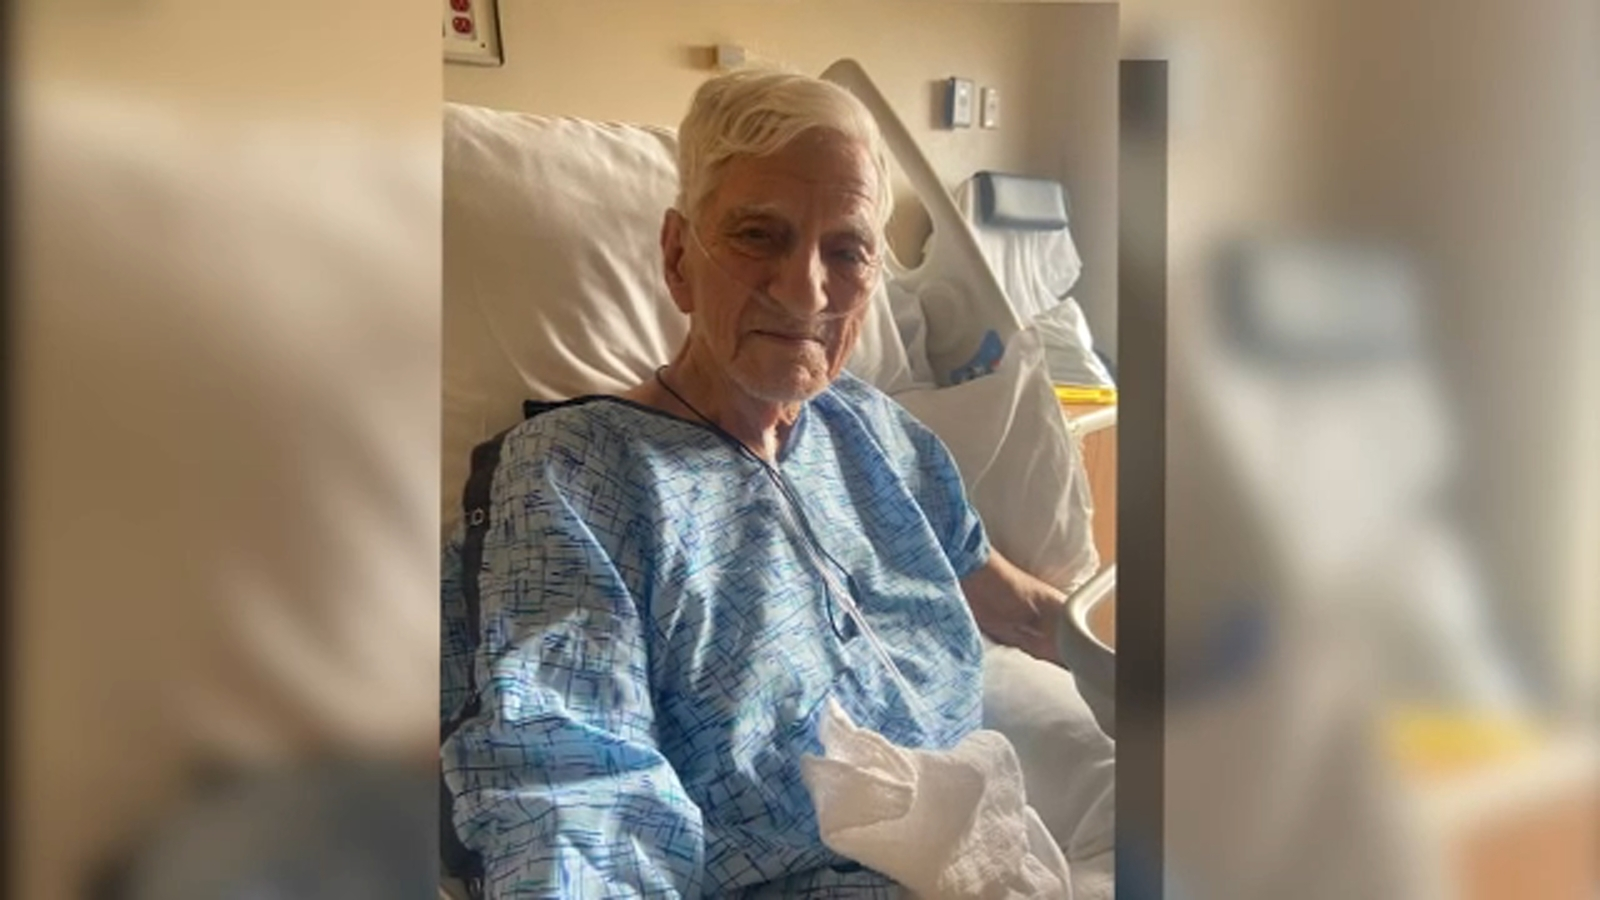 Ohio man, 91, recovering after accidentally being vaccinated twice in one day - KTRK-TV